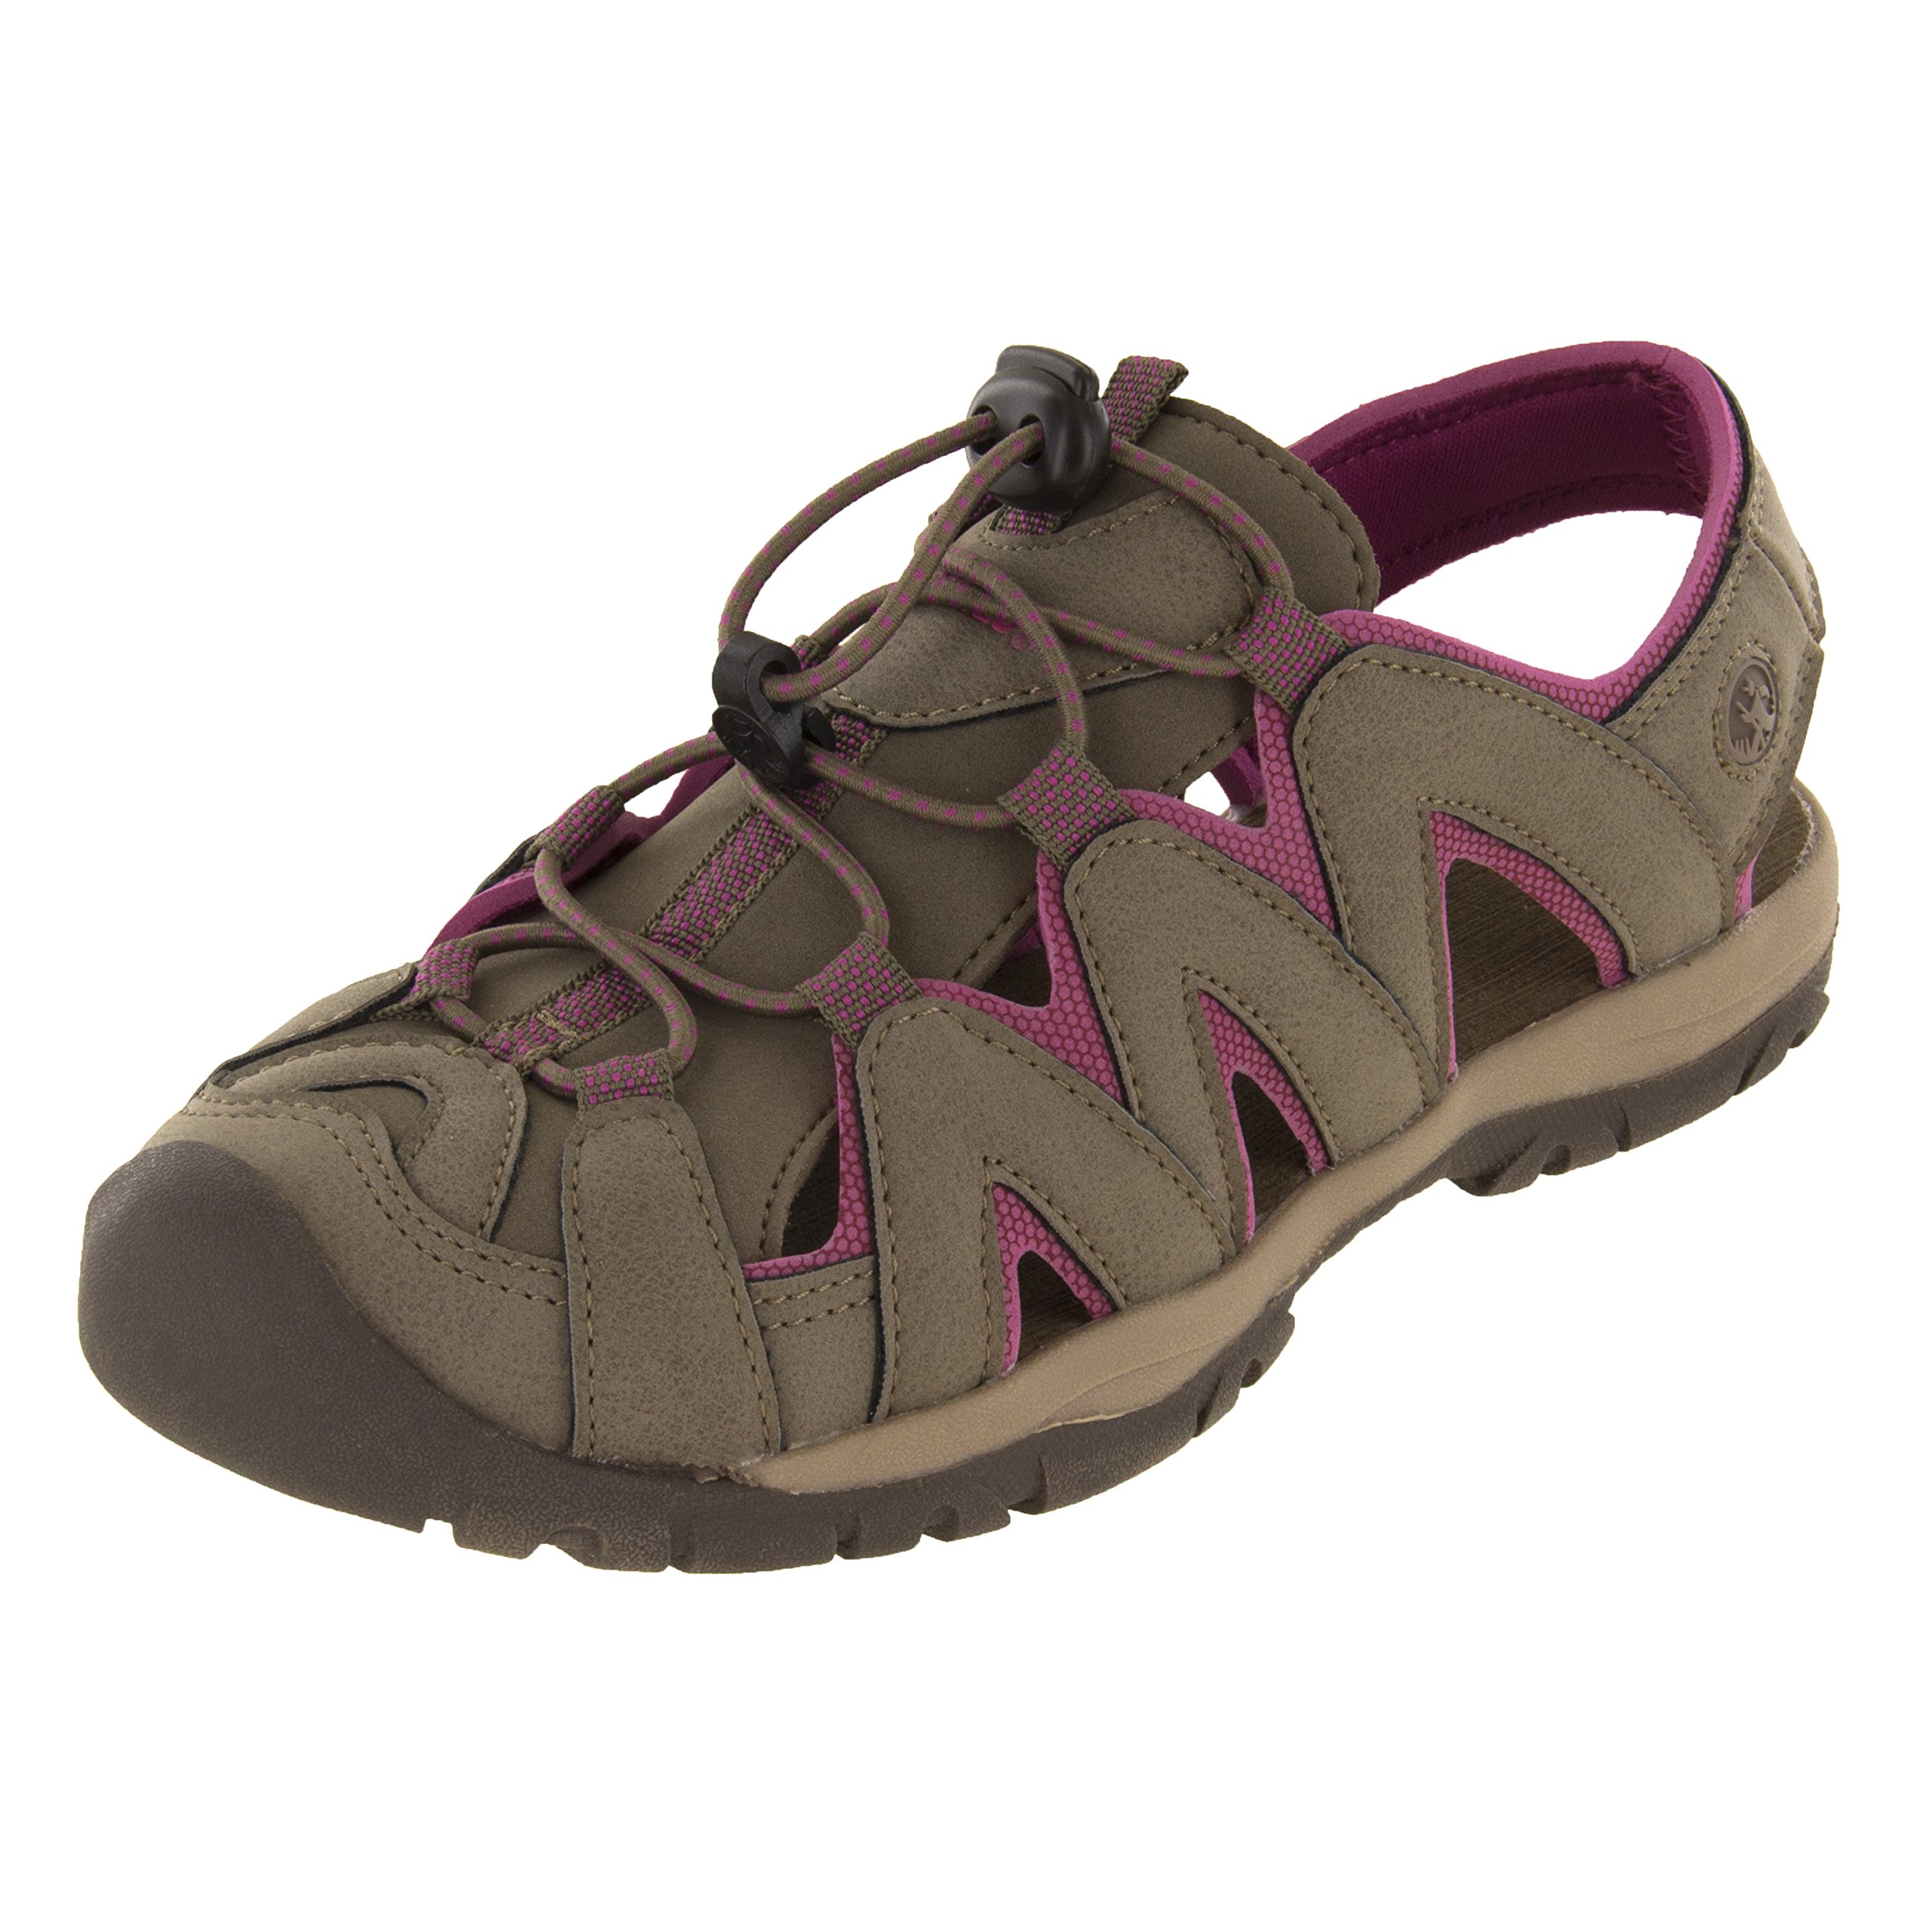 Northside Women's Corona Athletic Sandal, Stone/Berry, 6 B(M) US